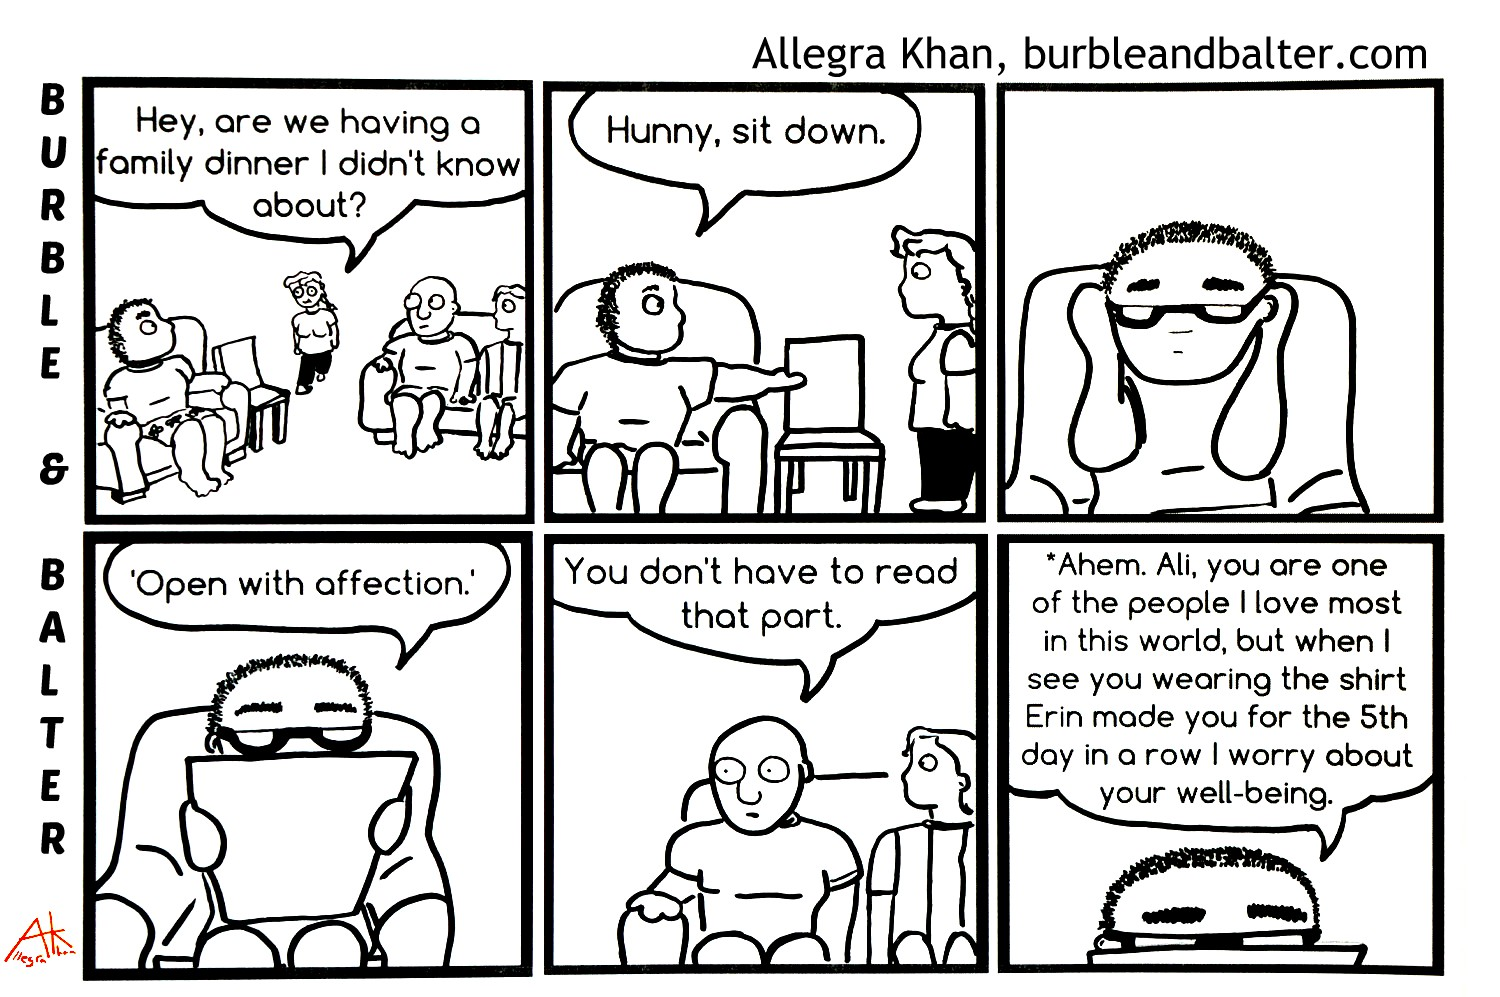 My-Shirt-Intervention-Comic-Allegra-Khan-Burble-and-Balter.jpg